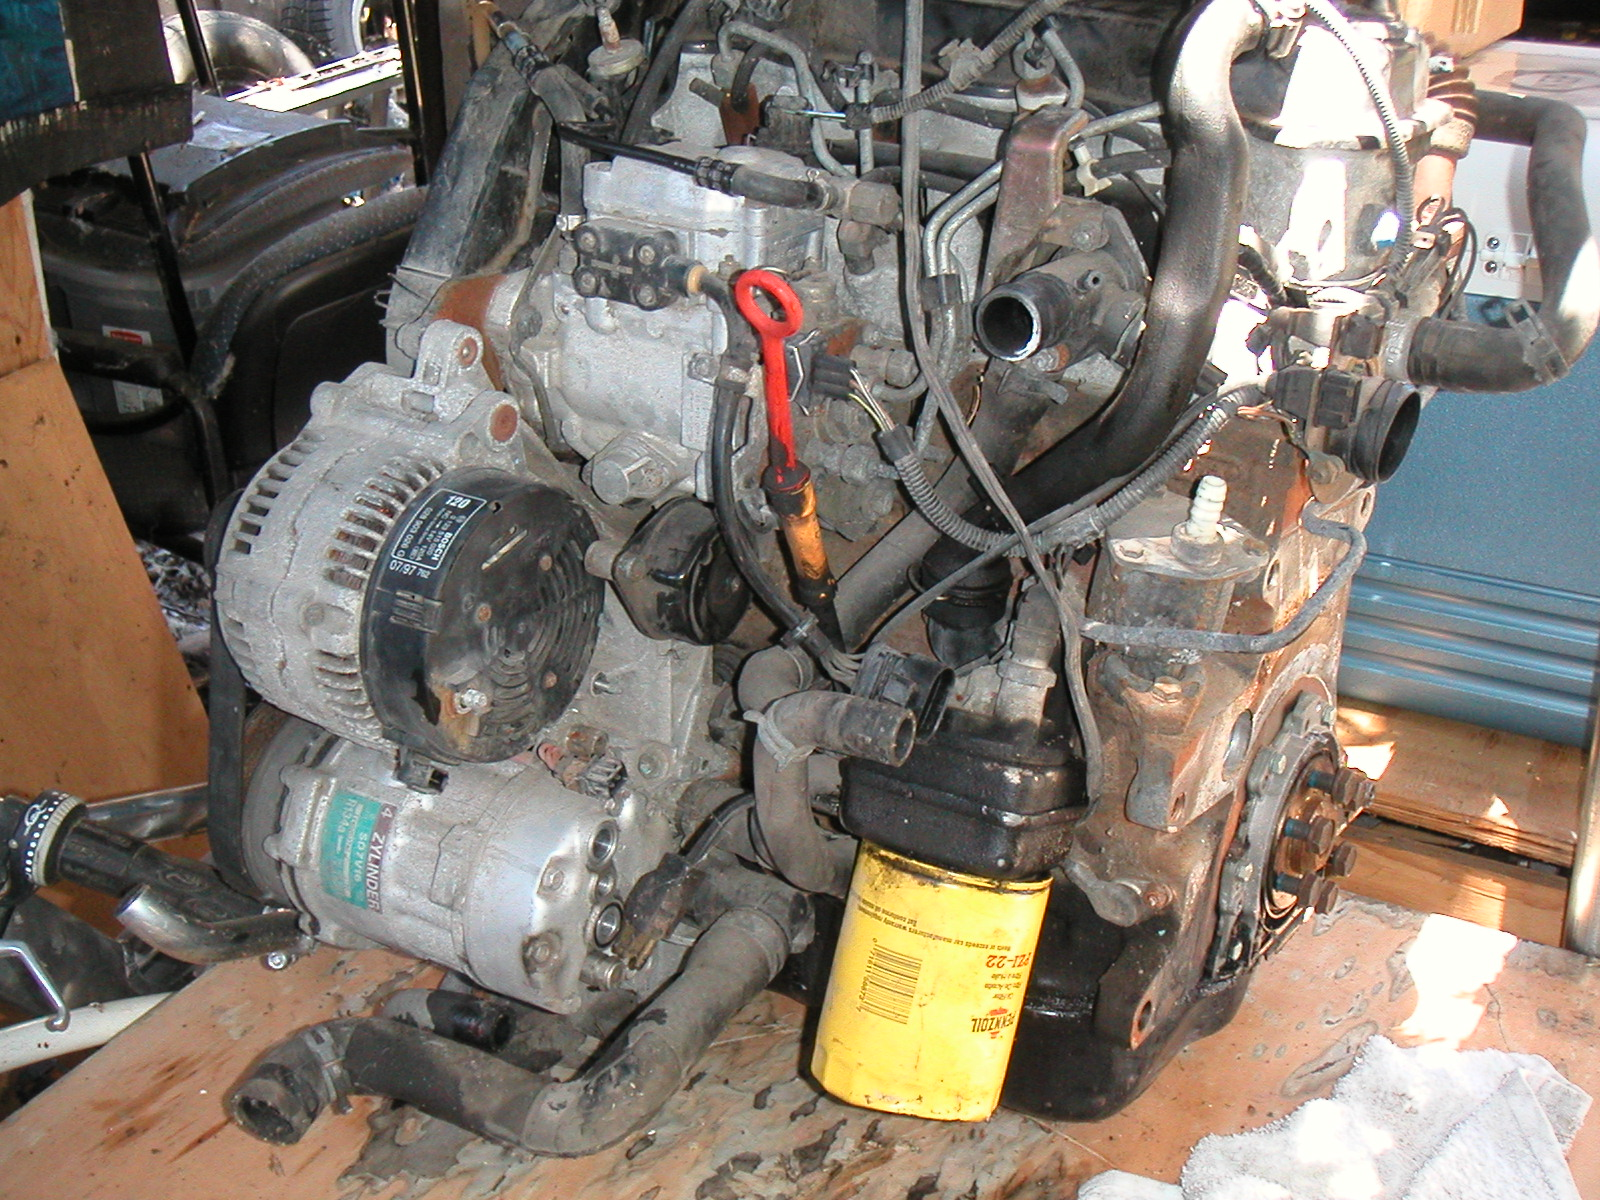 1999 jetta vr6 engine diagram trusted wiring diagrams u2022 rh sivamuni com 03 Jetta 2.0 Engine Diagram 99 Jetta 2 0 Engine Diagram